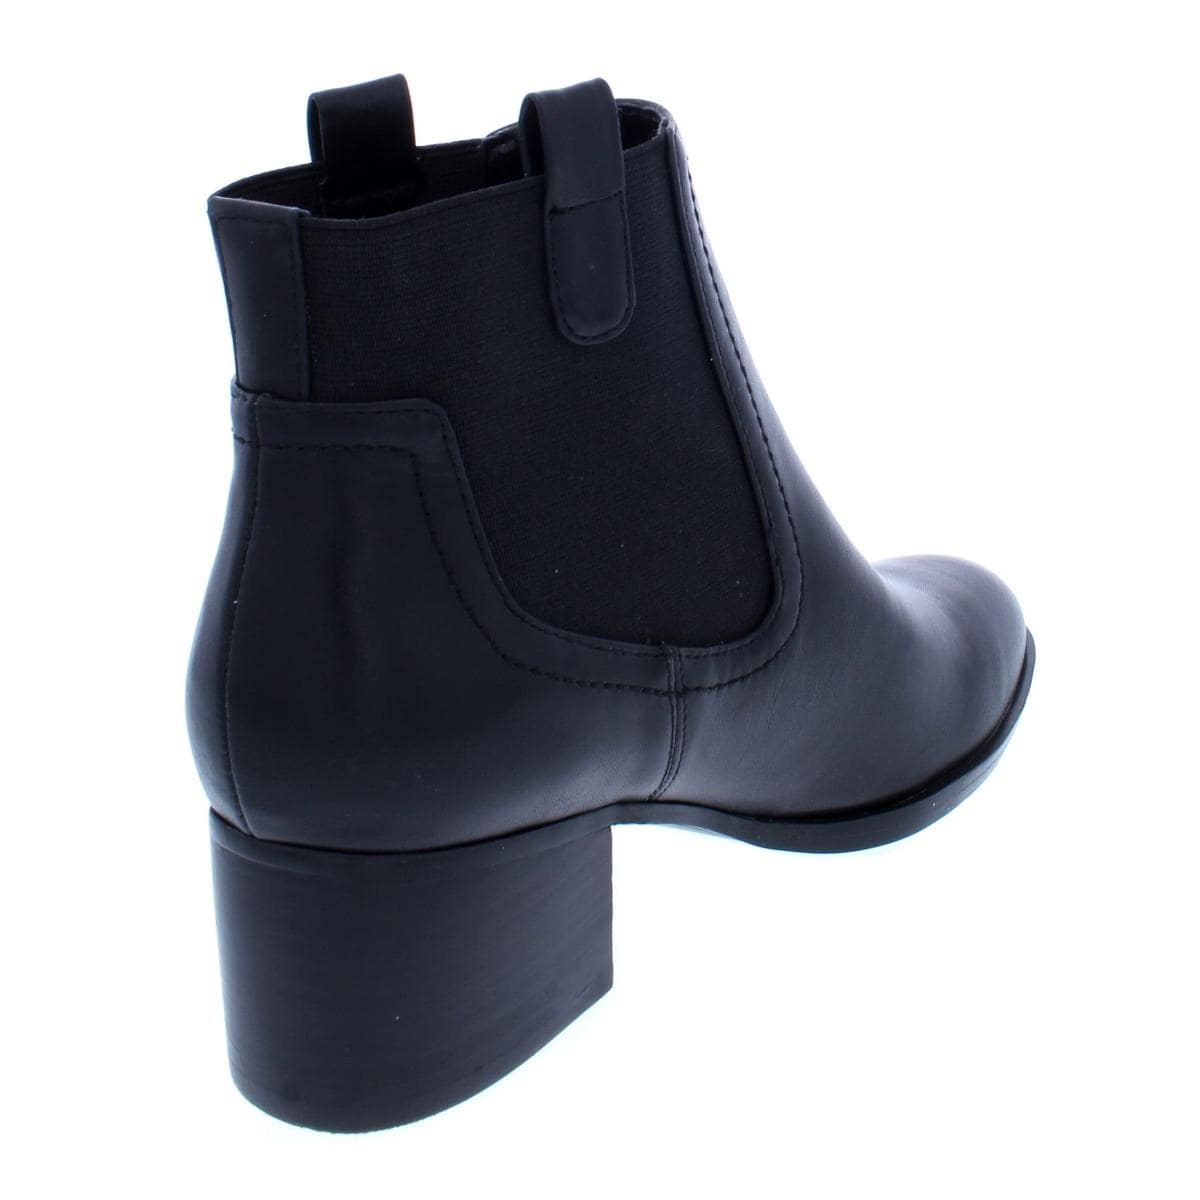 5dd8c9c1 Shop Tommy Hilfiger Womens Roxy Booties Ankle Pointed Toe - Free Shipping  On Orders Over $45 - Overstock - 24125768